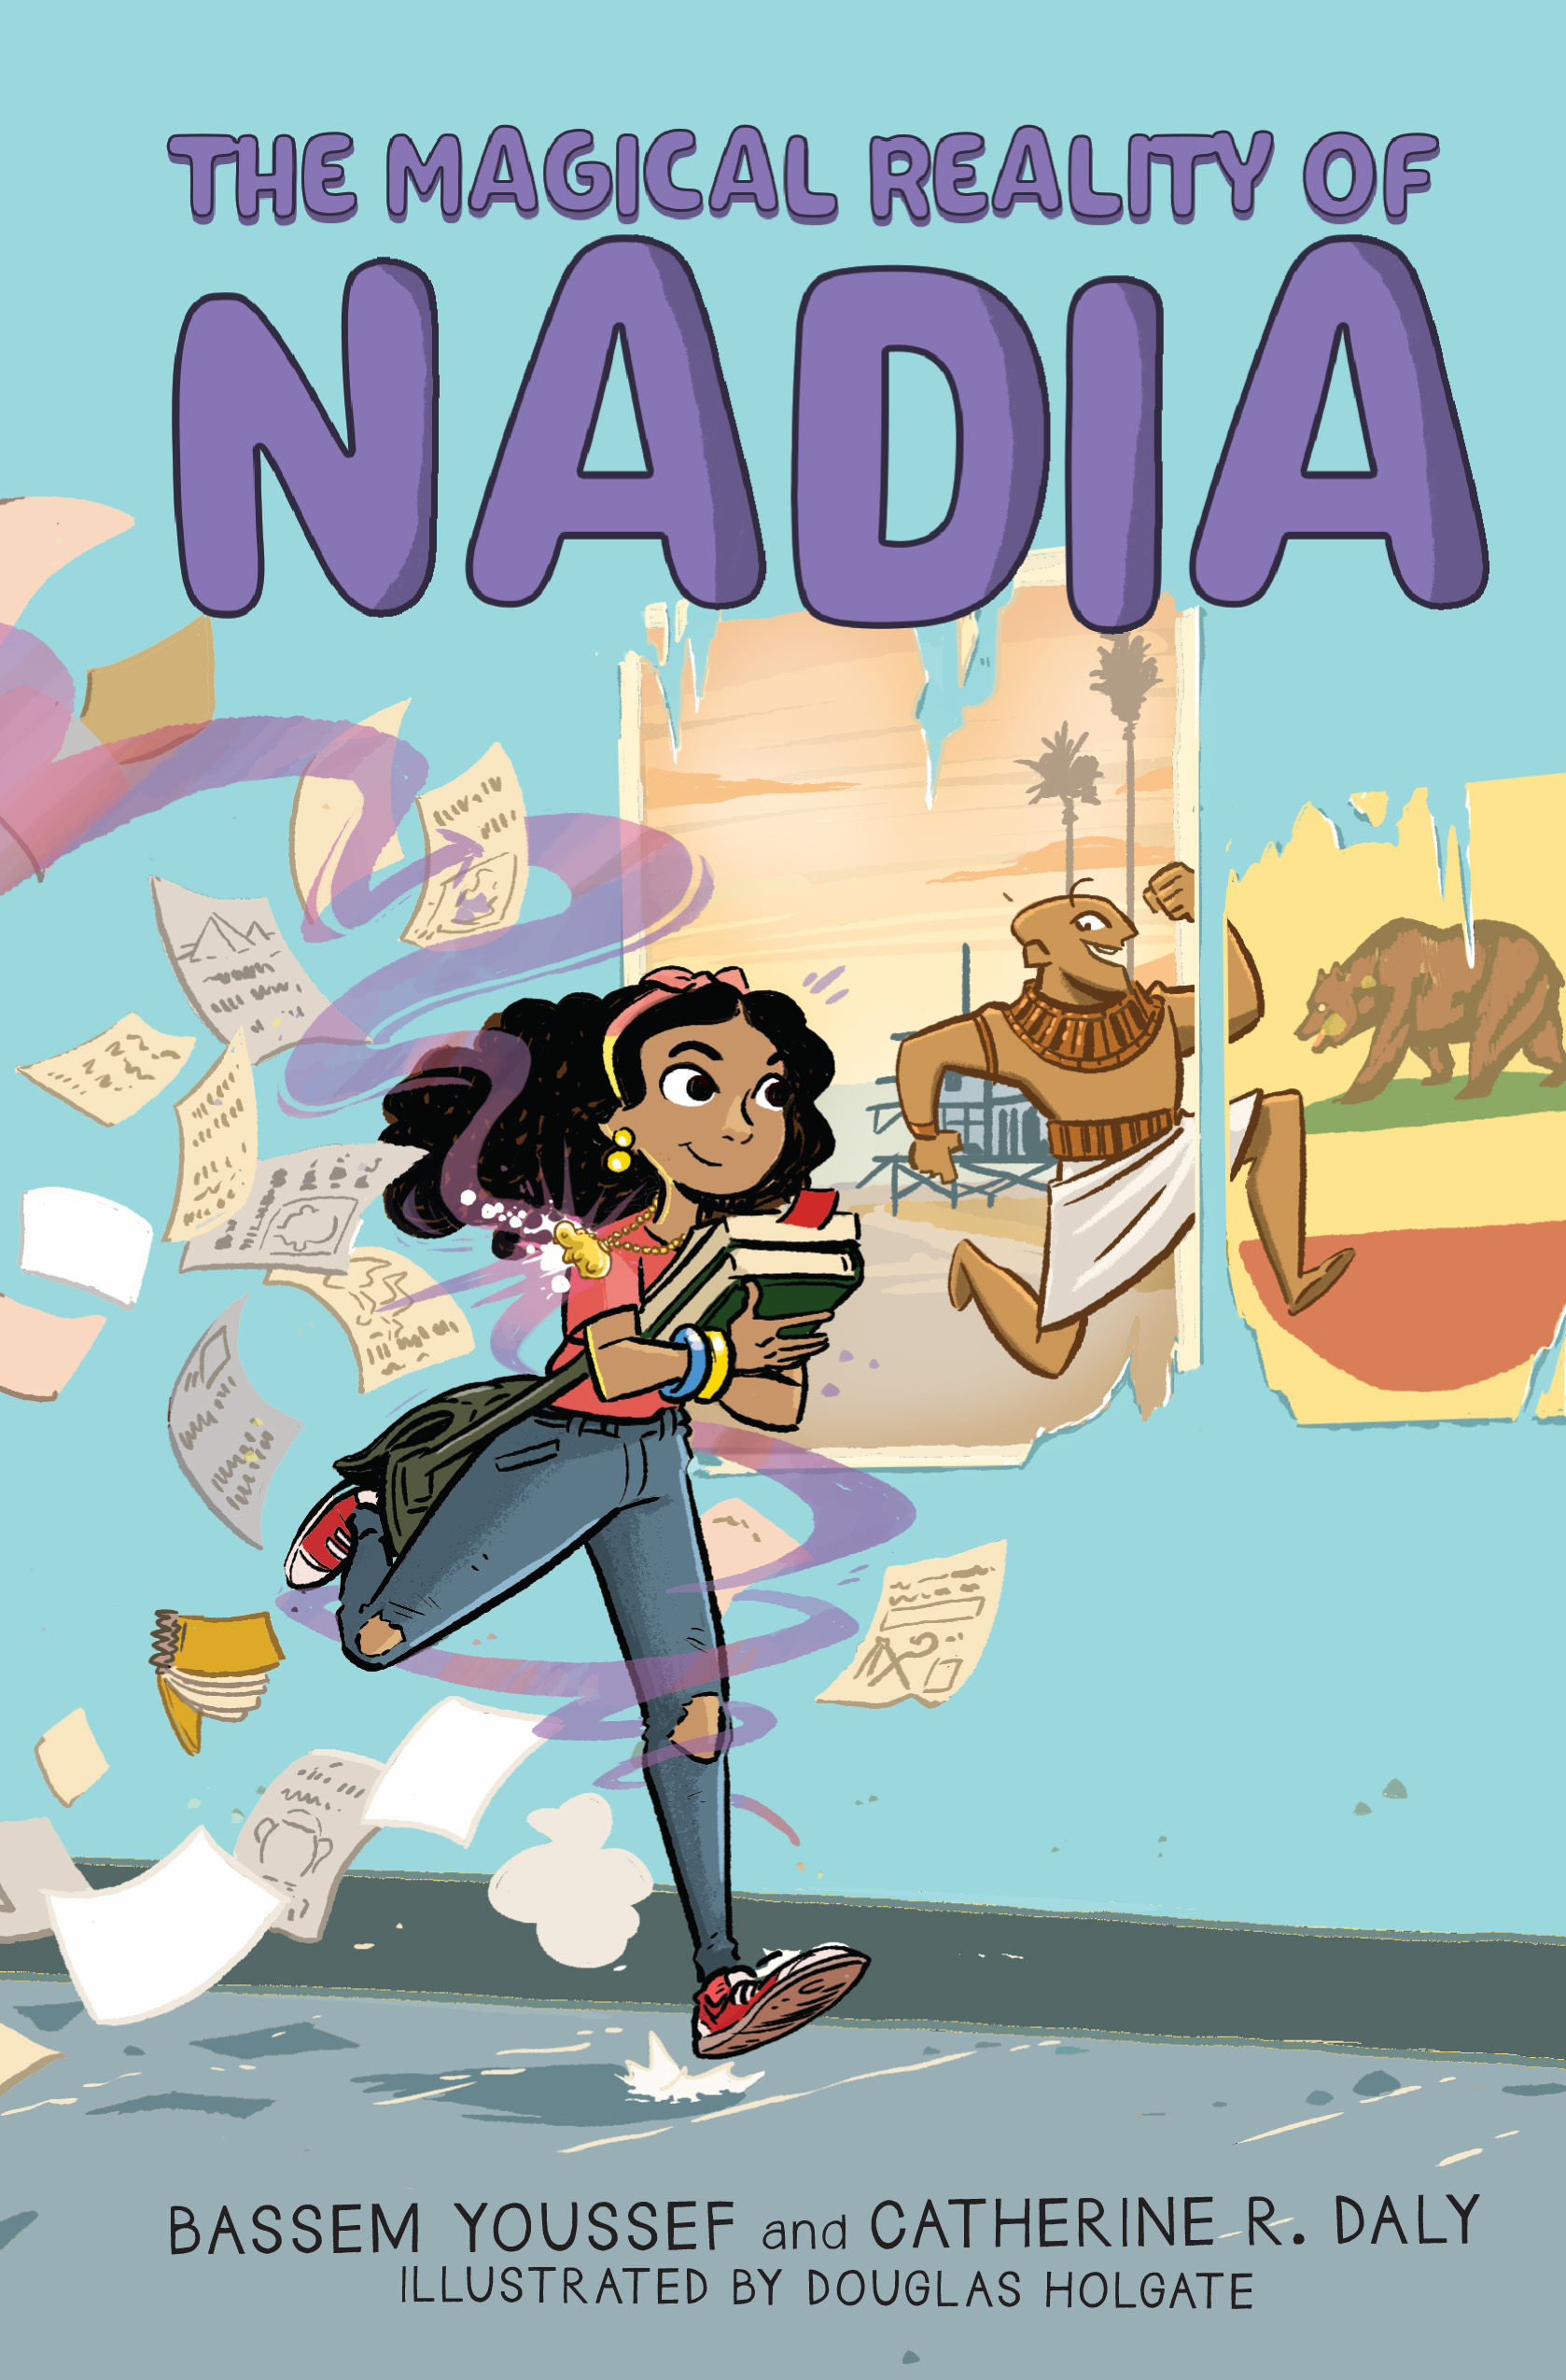 The Magical Reality of Nadia by Bassem Youssef